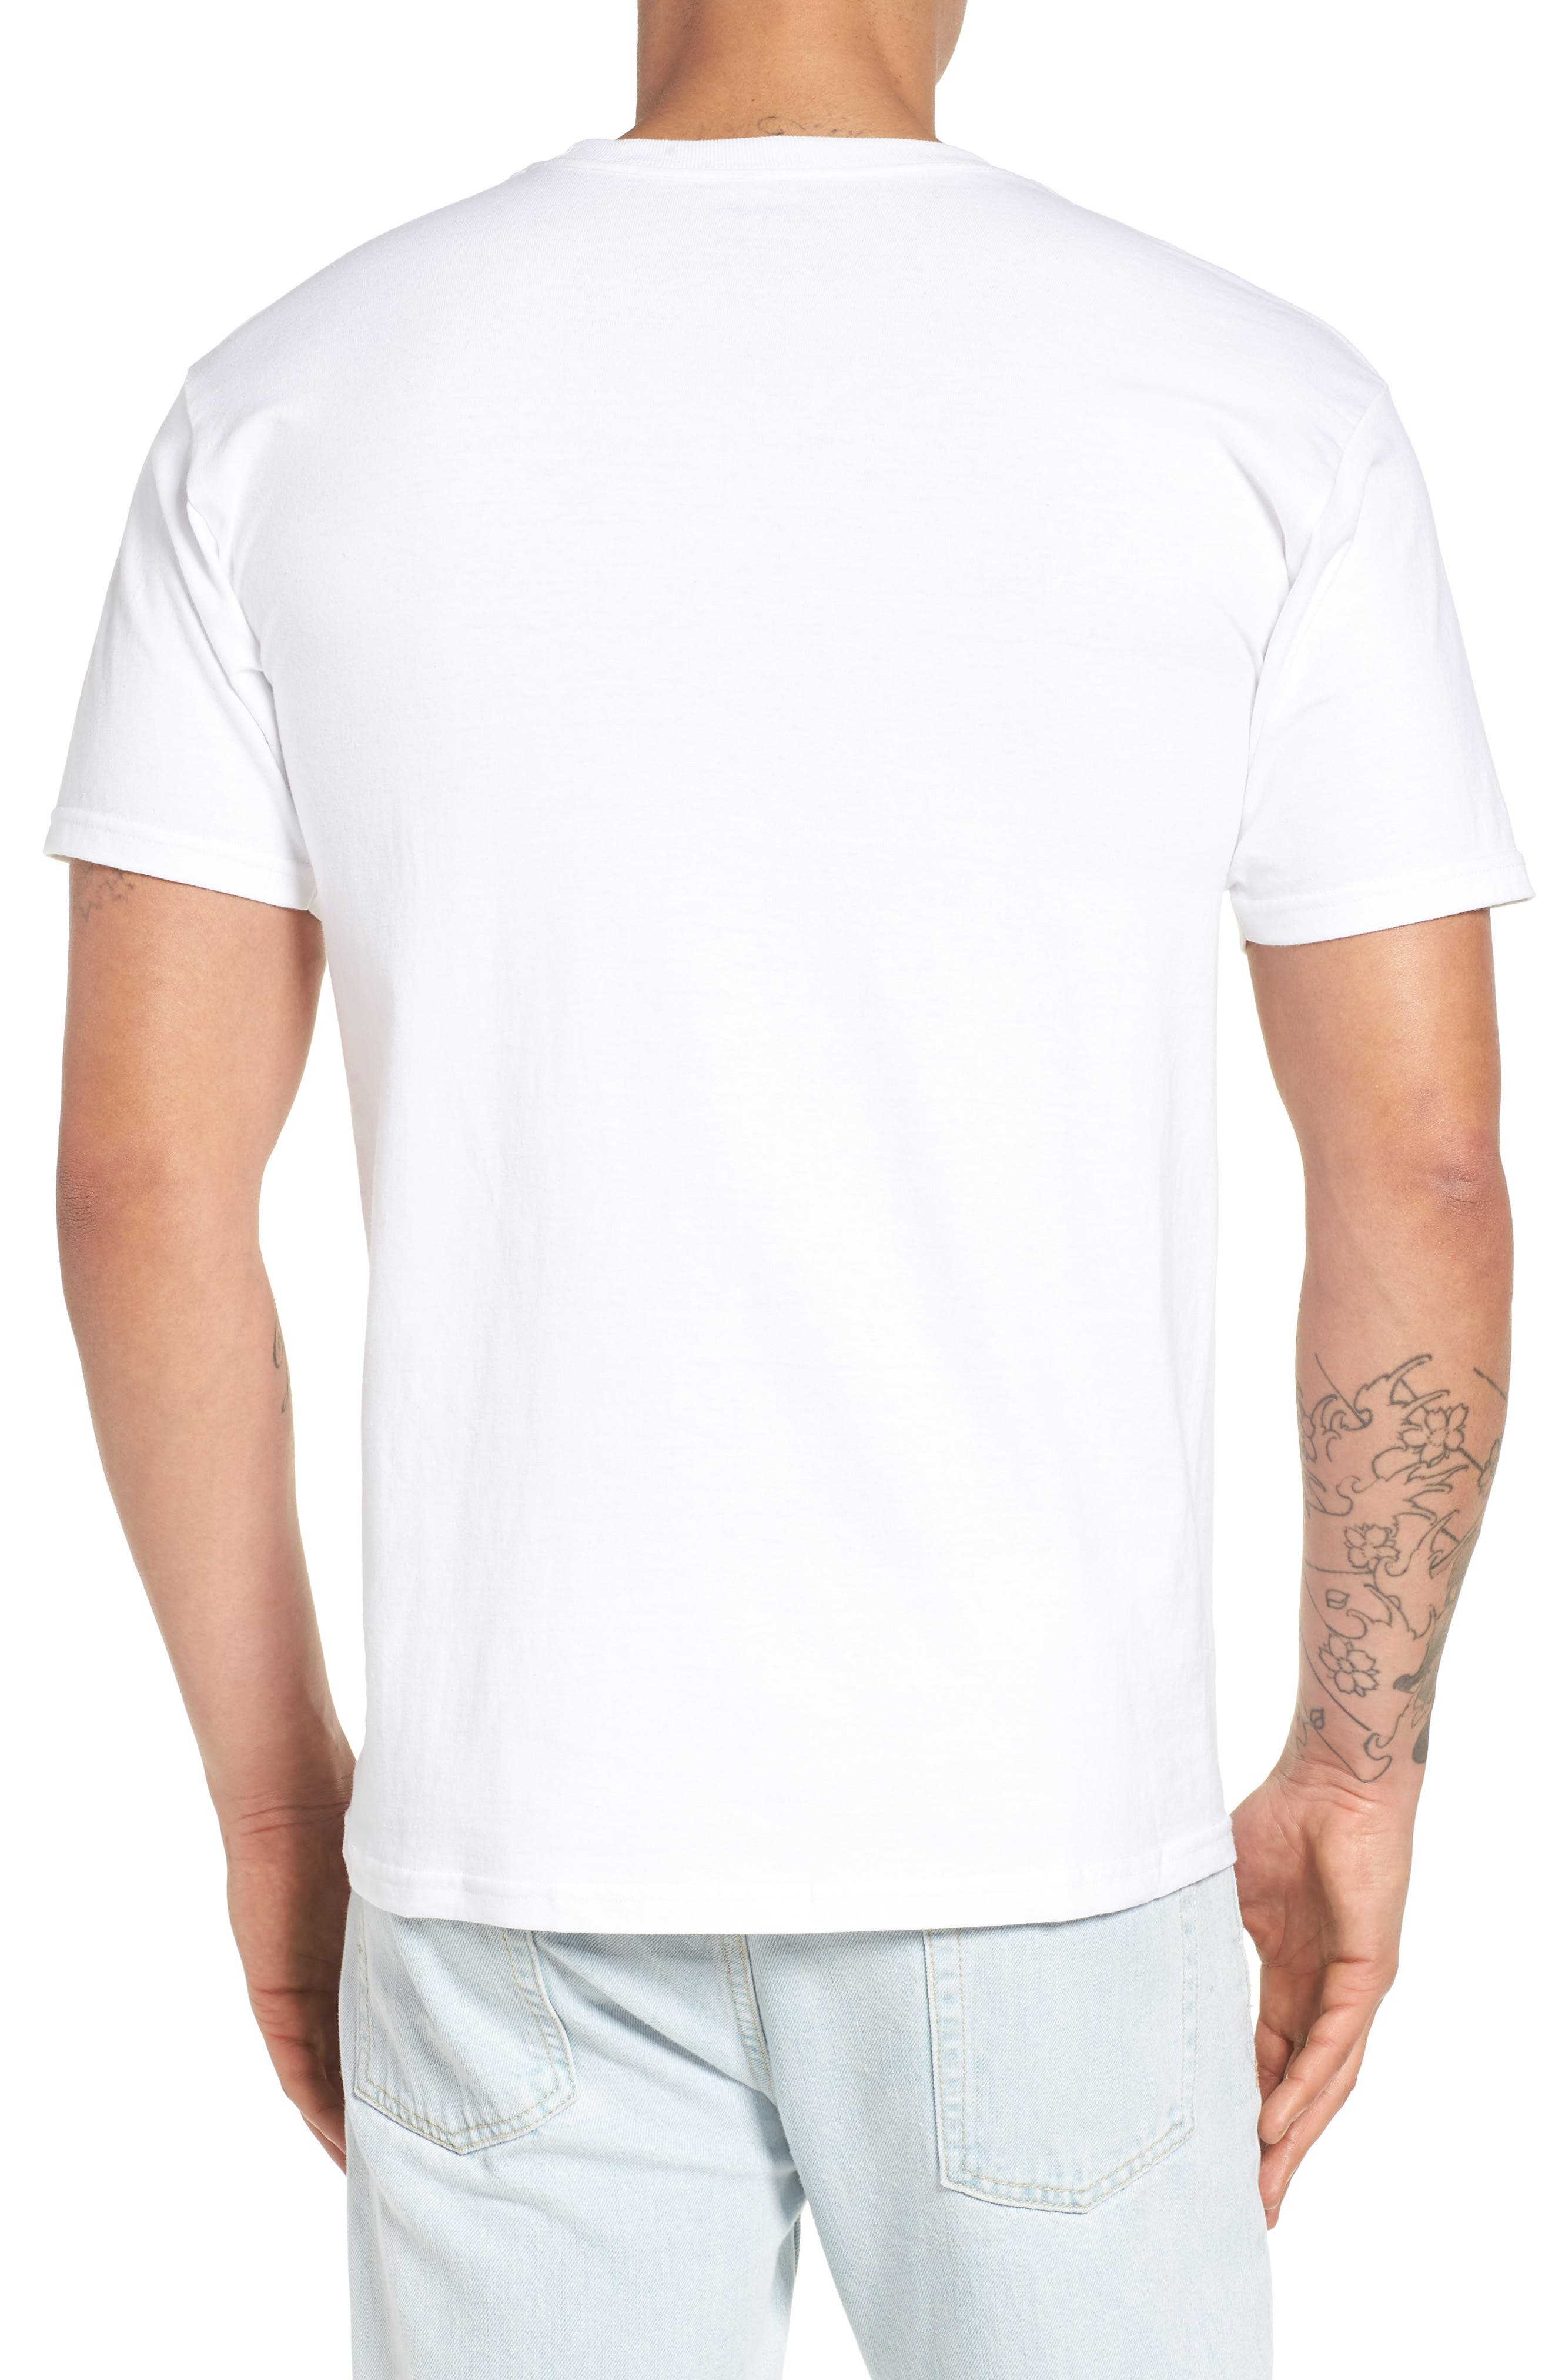 Original Fitness Graphic T-Shirt,                             Alternate thumbnail 2, color,                             WHITE/ BLACK/ CHINESE RED